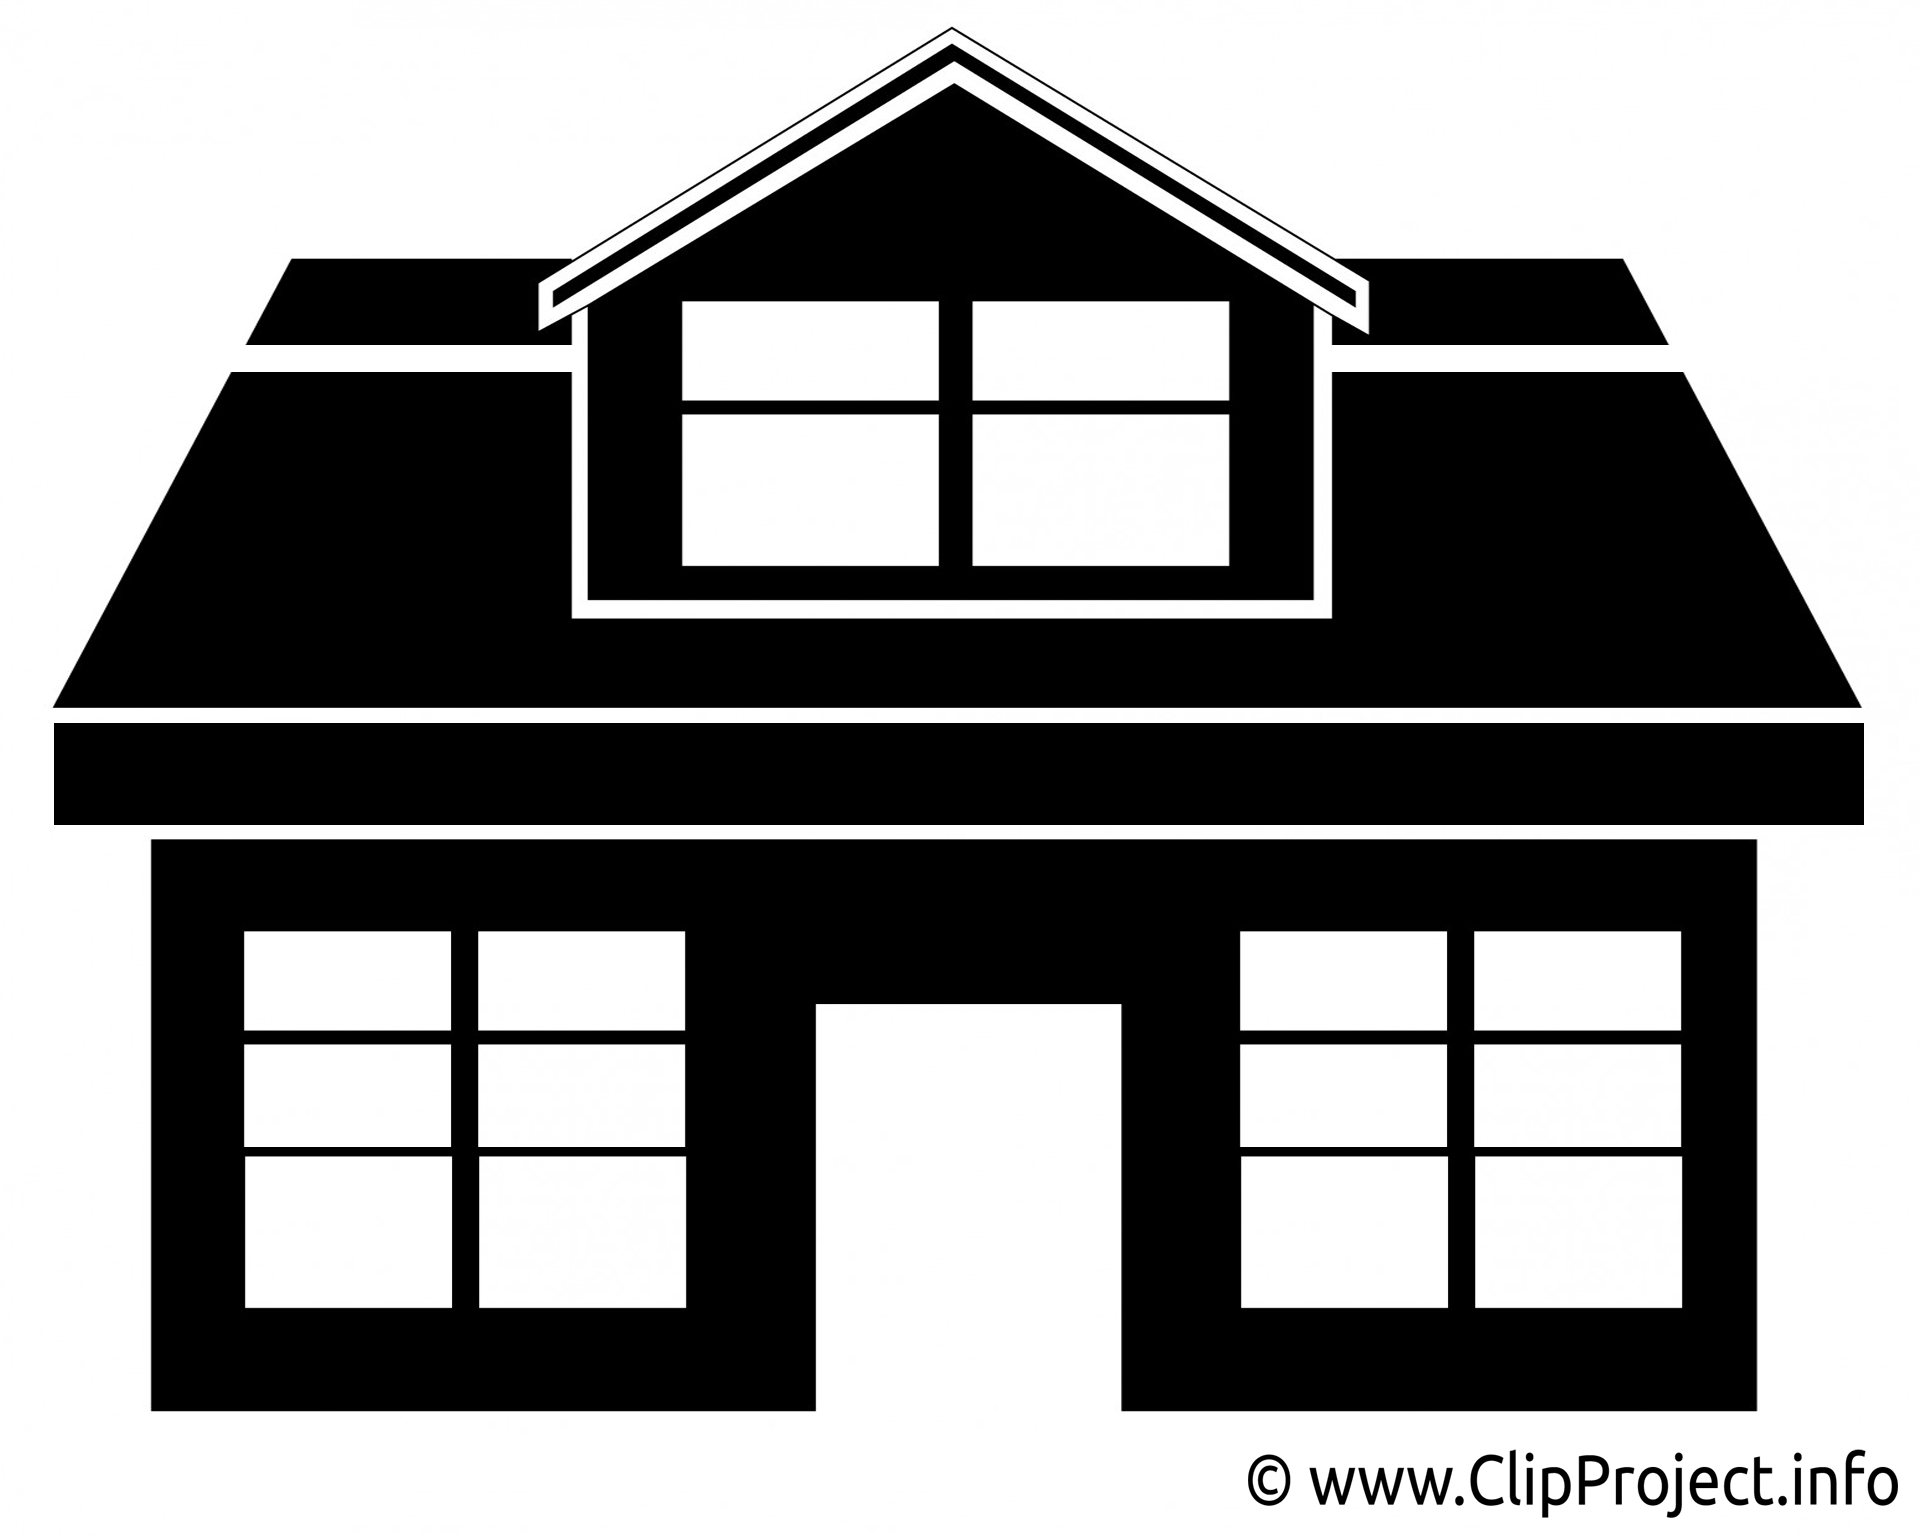 Haus clipart schwarz wei png free Free Premium Cliparts - ClipartFest png free